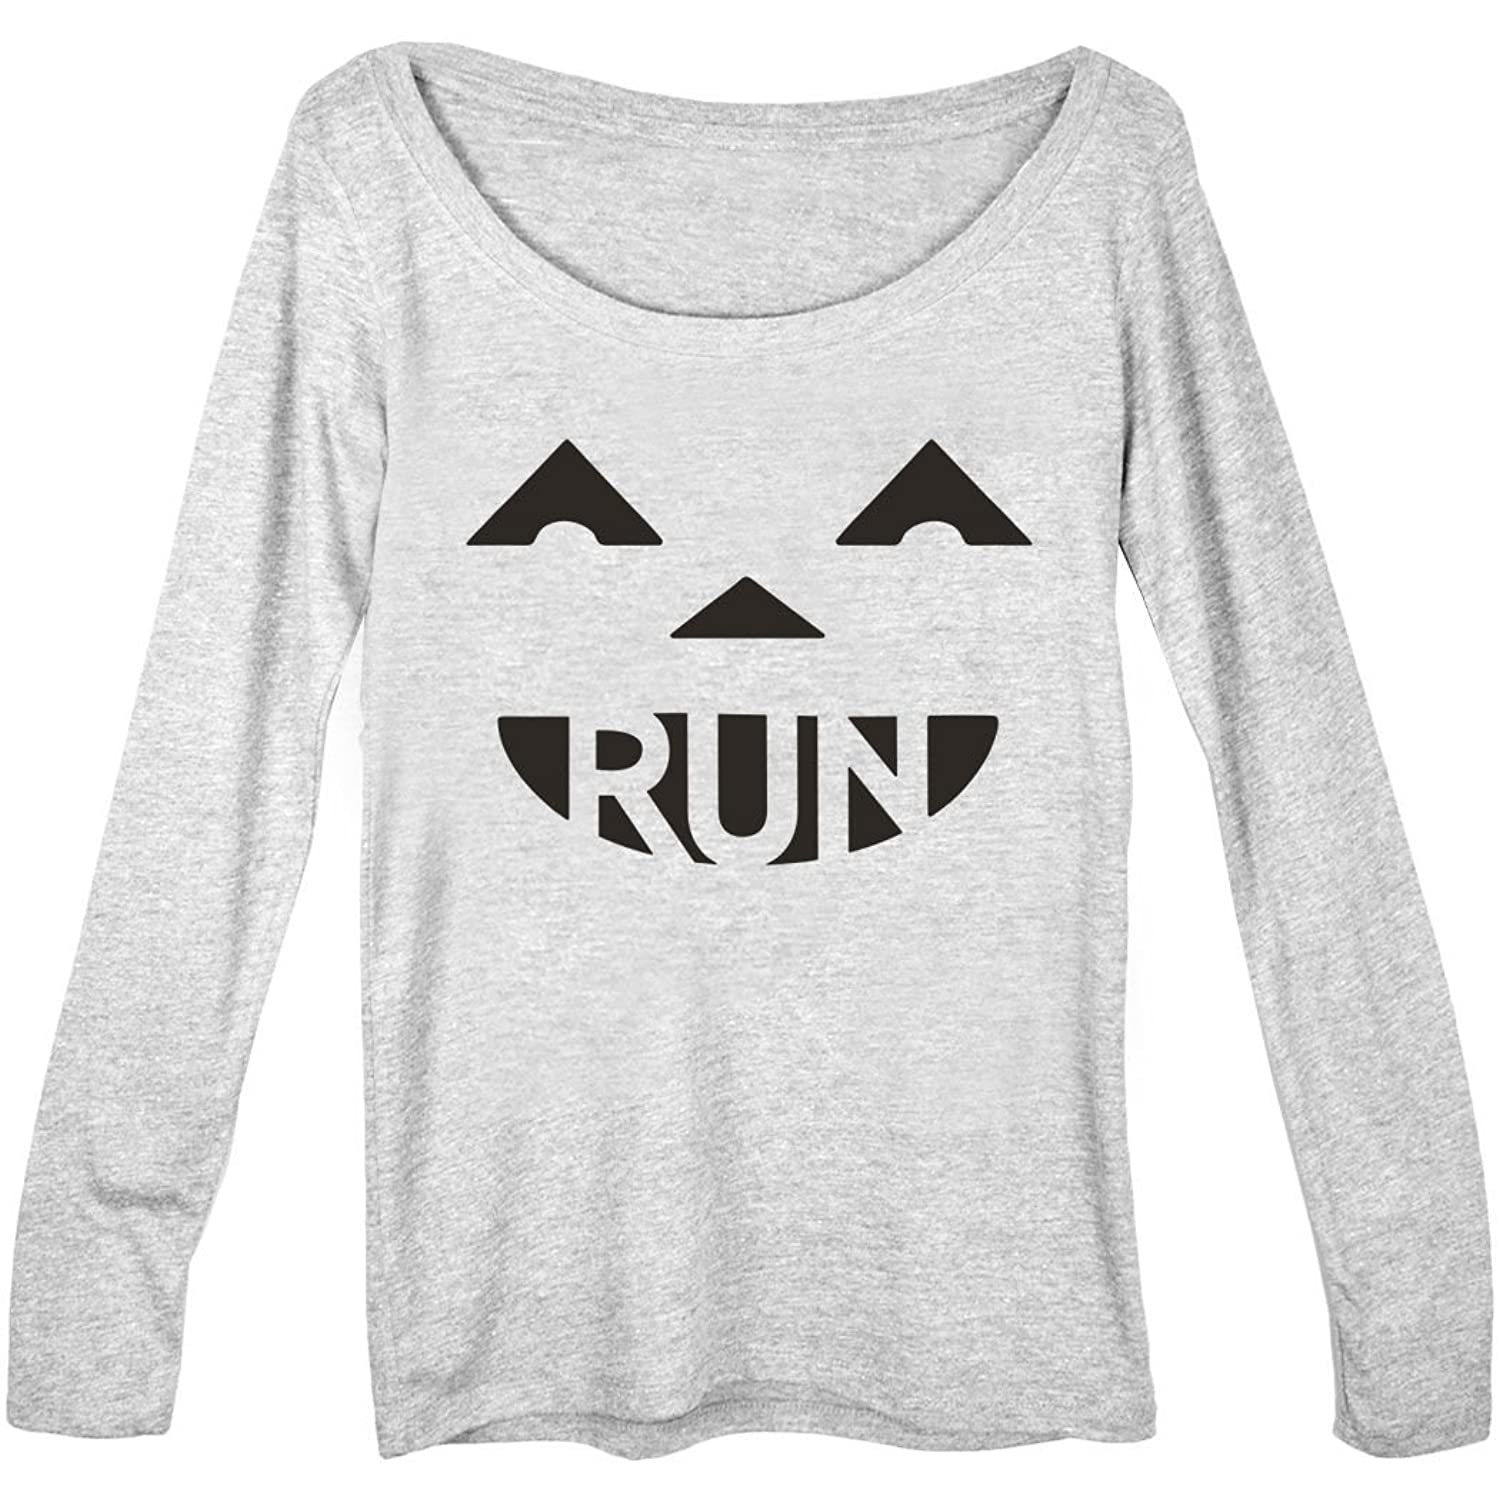 Gone For a Run Women's Runner Scoop Neck Long Sleeve Tee Pumpkin Run